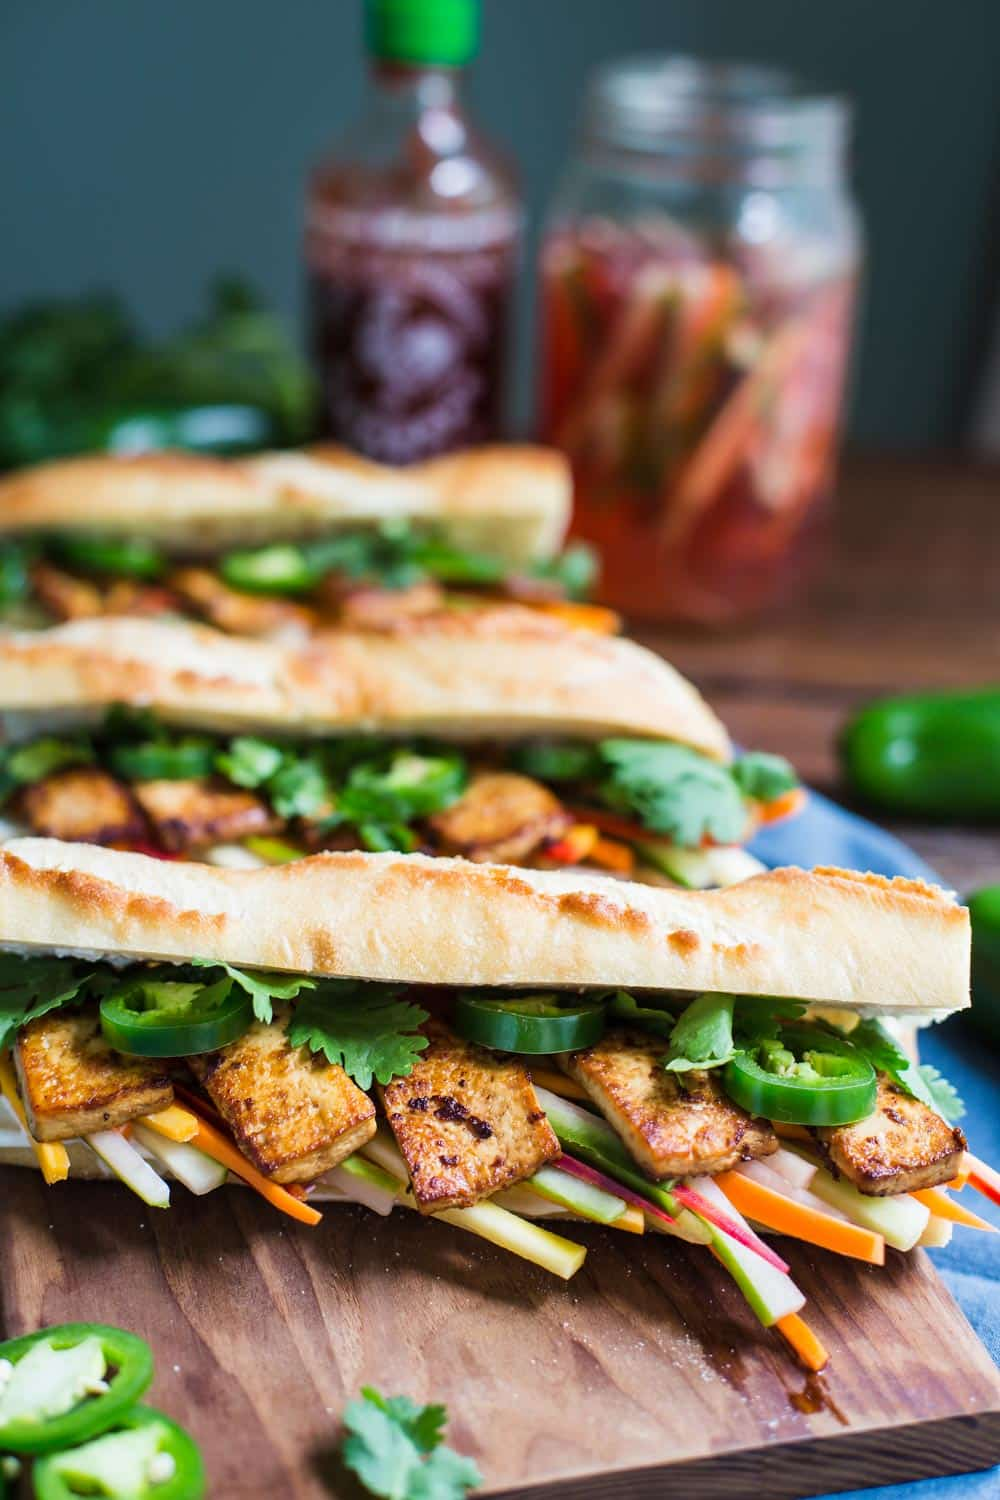 4: tofu banh mi baguette - the classic Vietnamese roll gets a vegan makeover